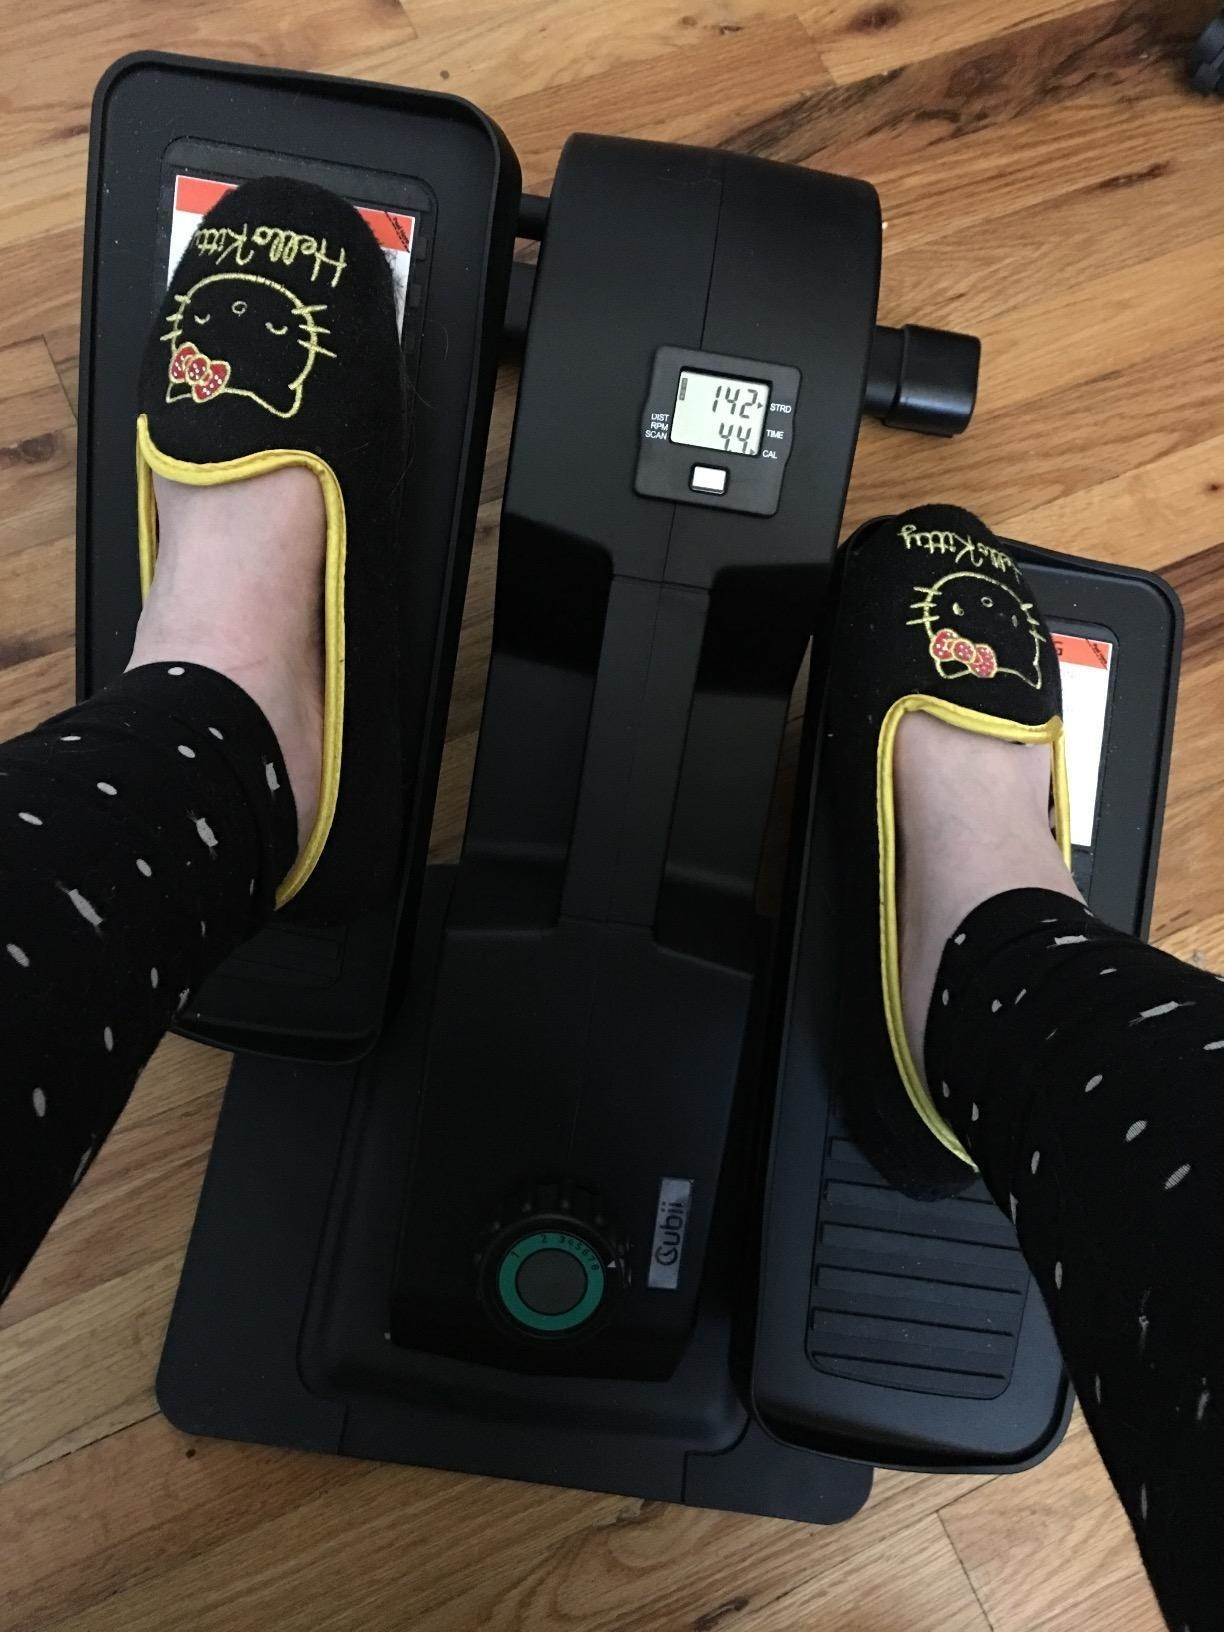 reviewer uses desk elliptical while wearing Hello Kitty slippers